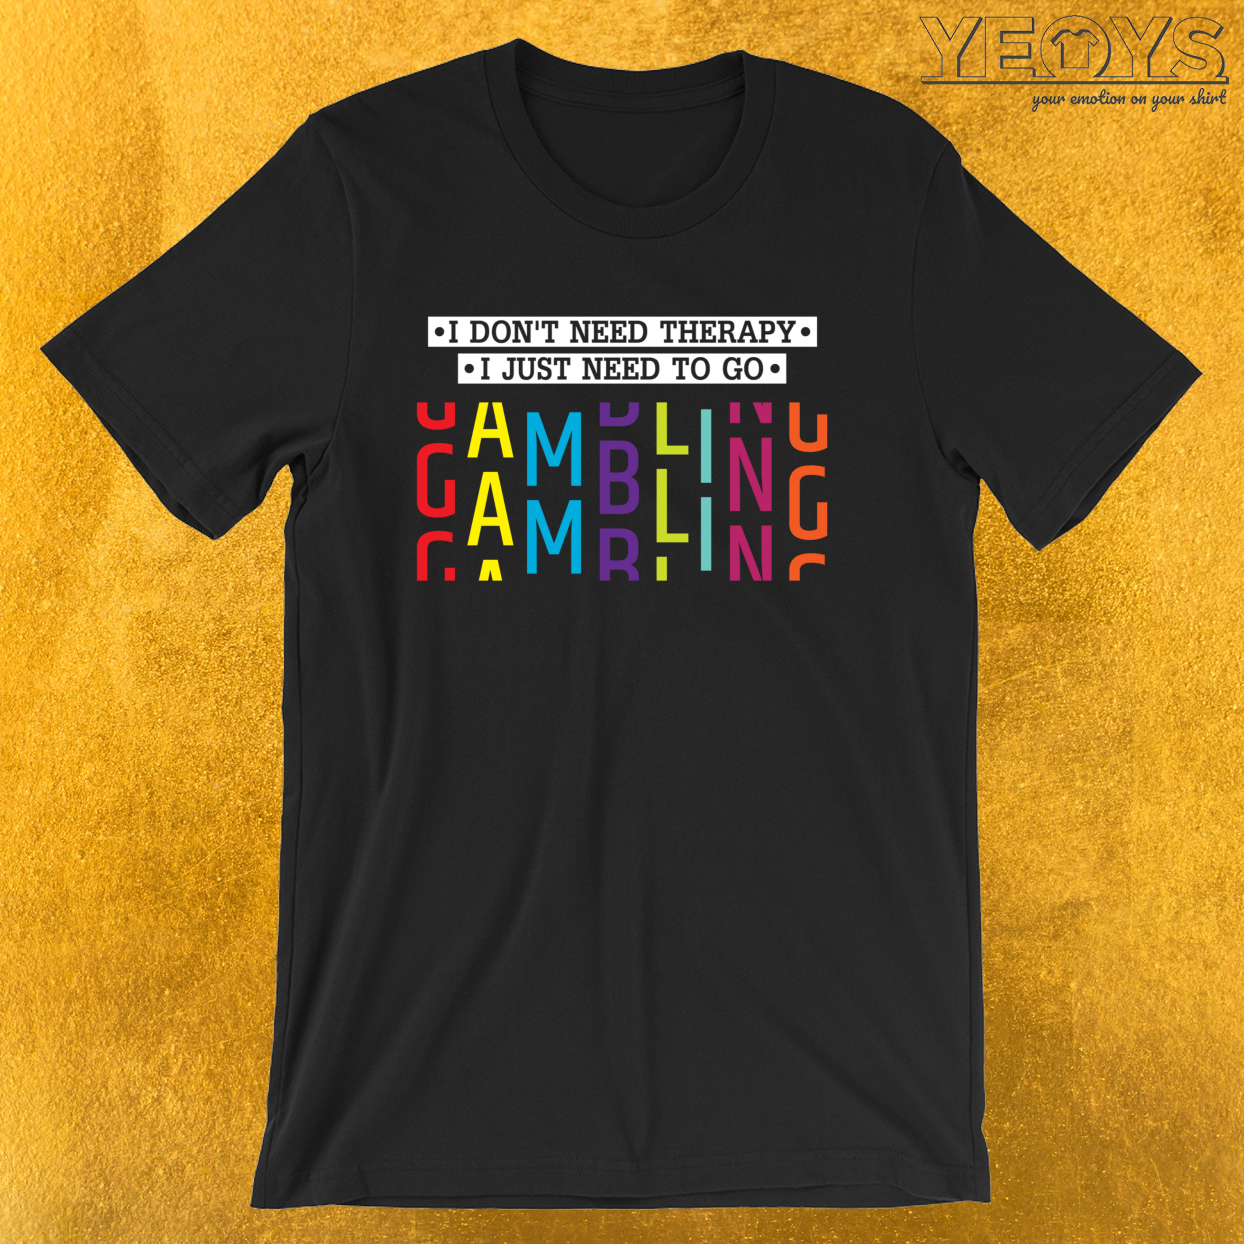 I Don't Need Therapy I Need To Go Gambling – Gambling Problem Tee